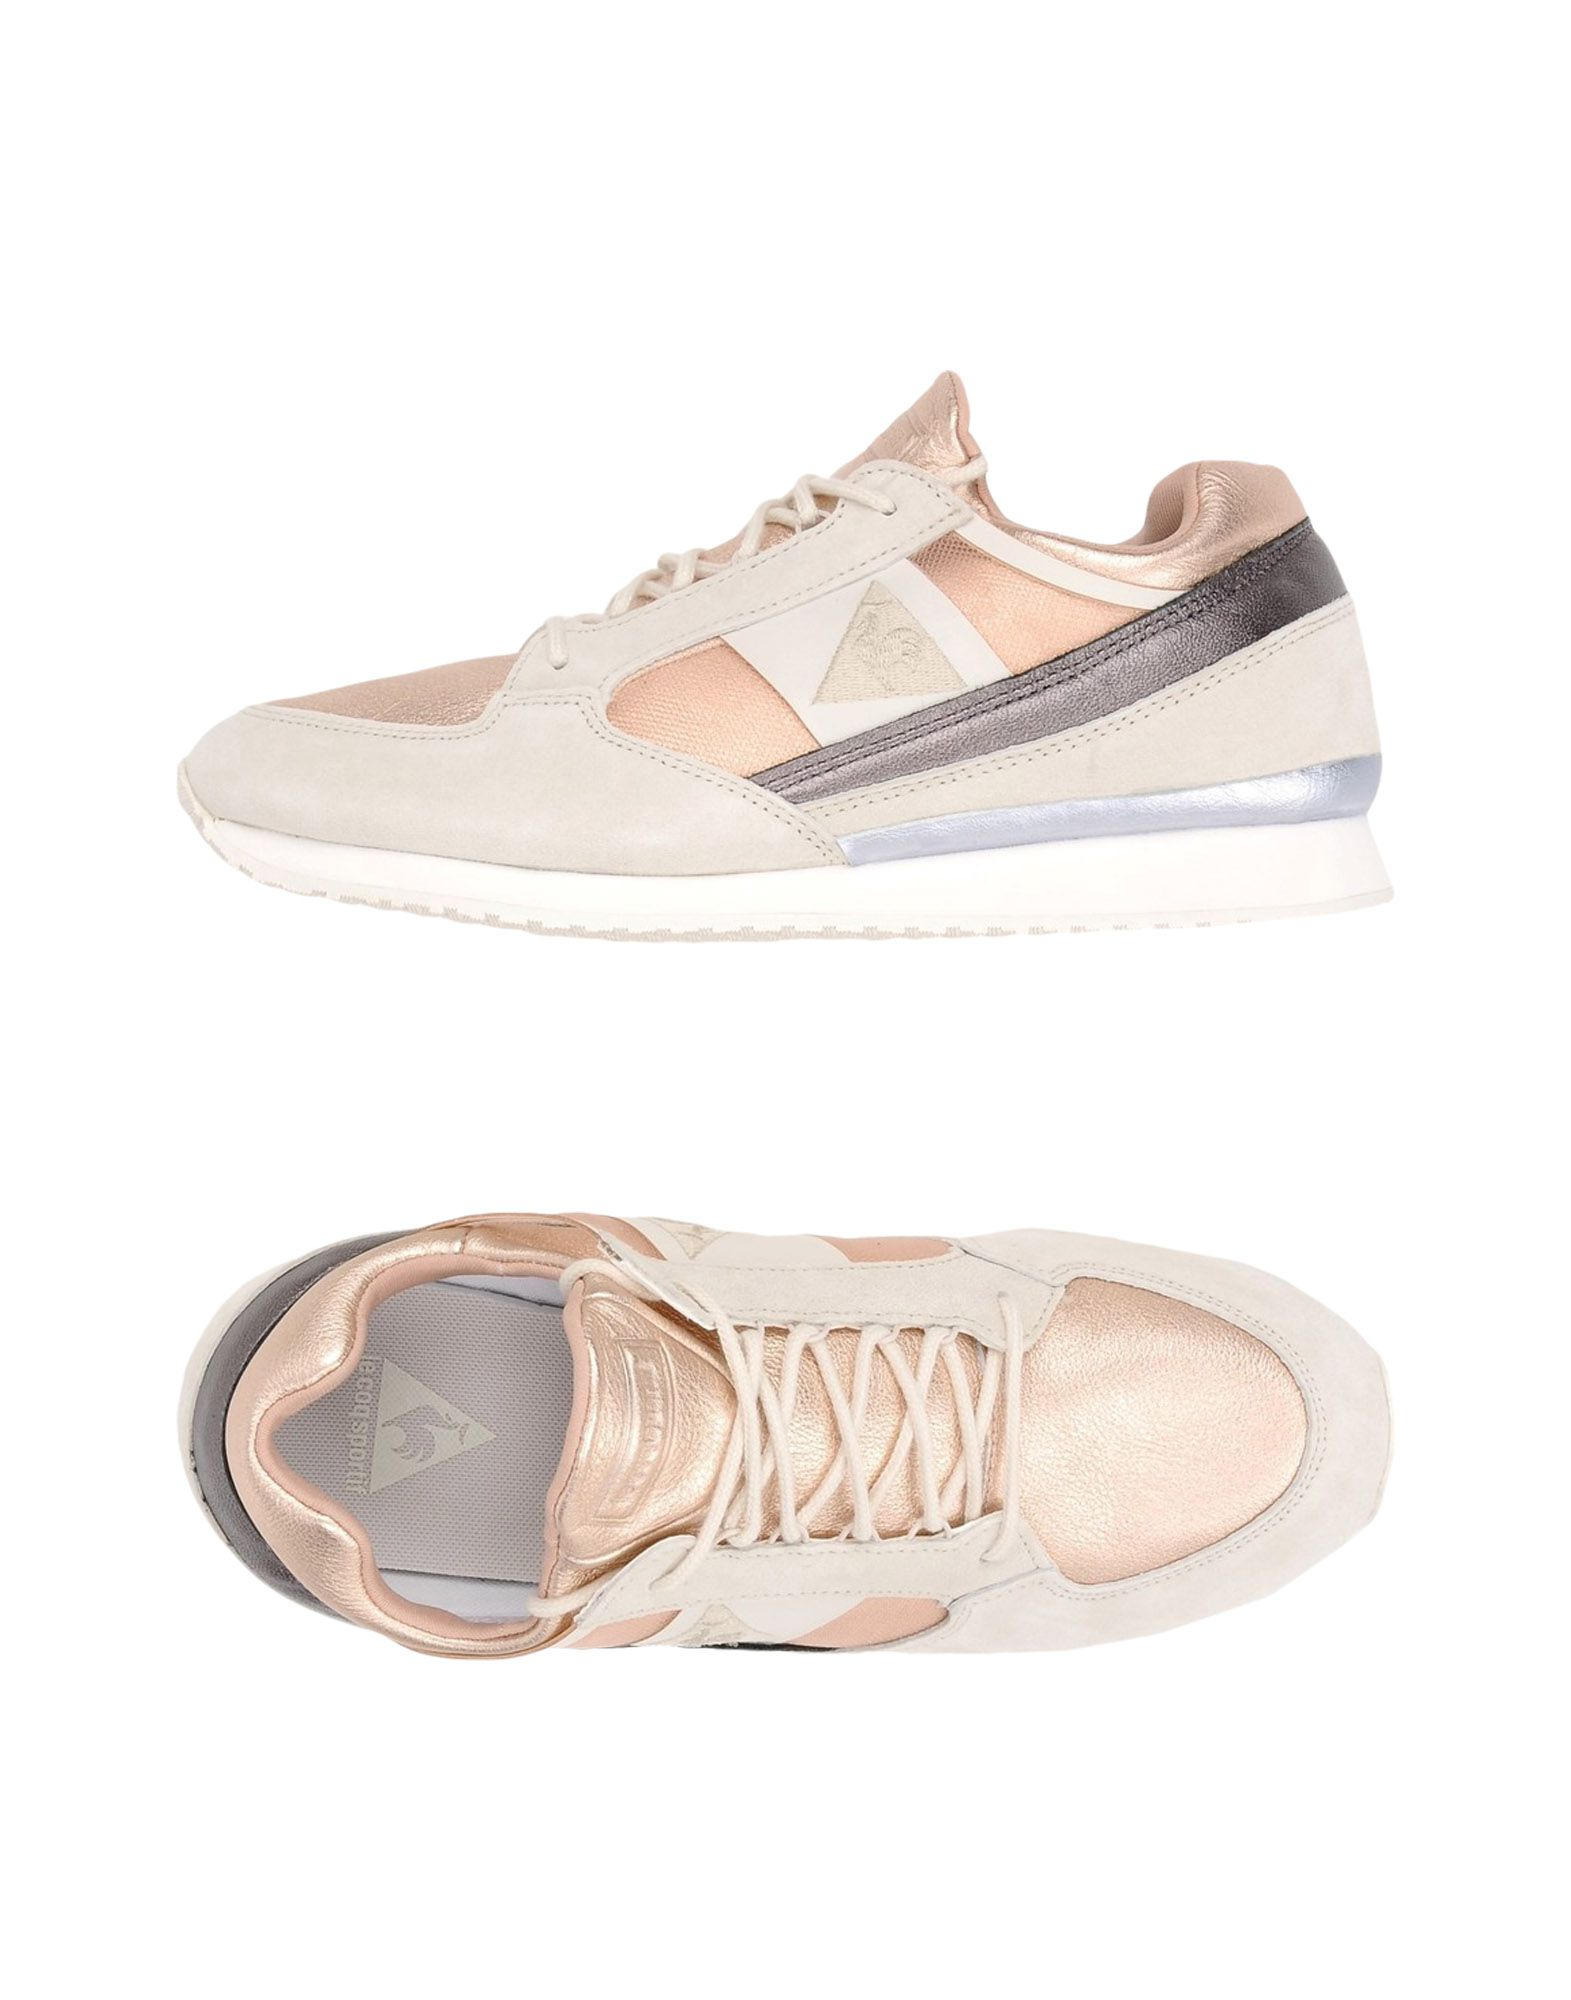 Le Coq Sportif Eclat Atl Metallic Leather Mix - Sneakers Sneakers - - Women Le Coq Sportif Sneakers online on  United Kingdom - 11395319KH 10dc65